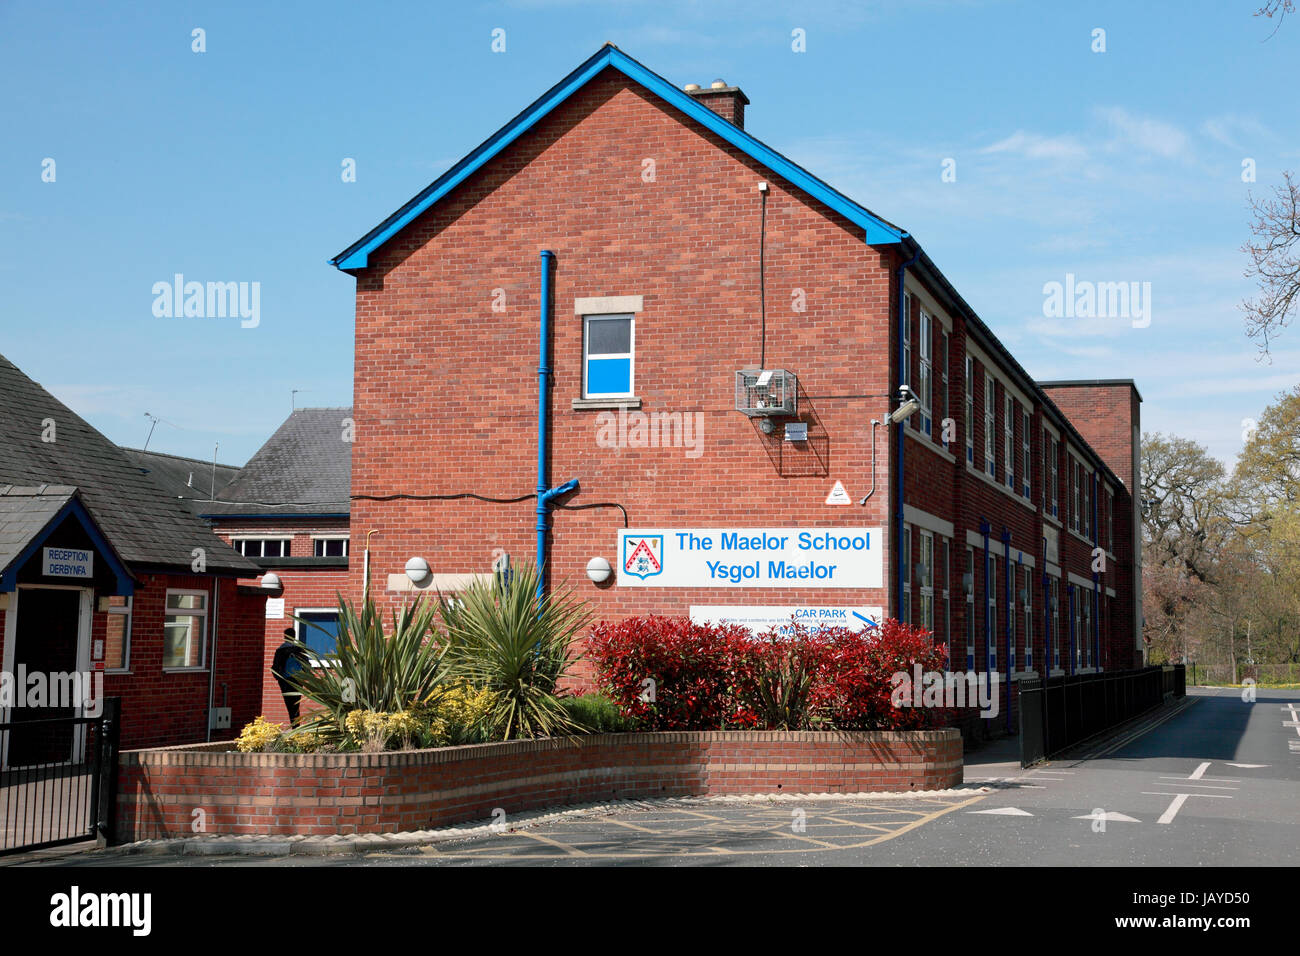 The Maelor School, a Welsh secondary school in Penley, Wrexham which serves the rural border area of England and - Stock Image